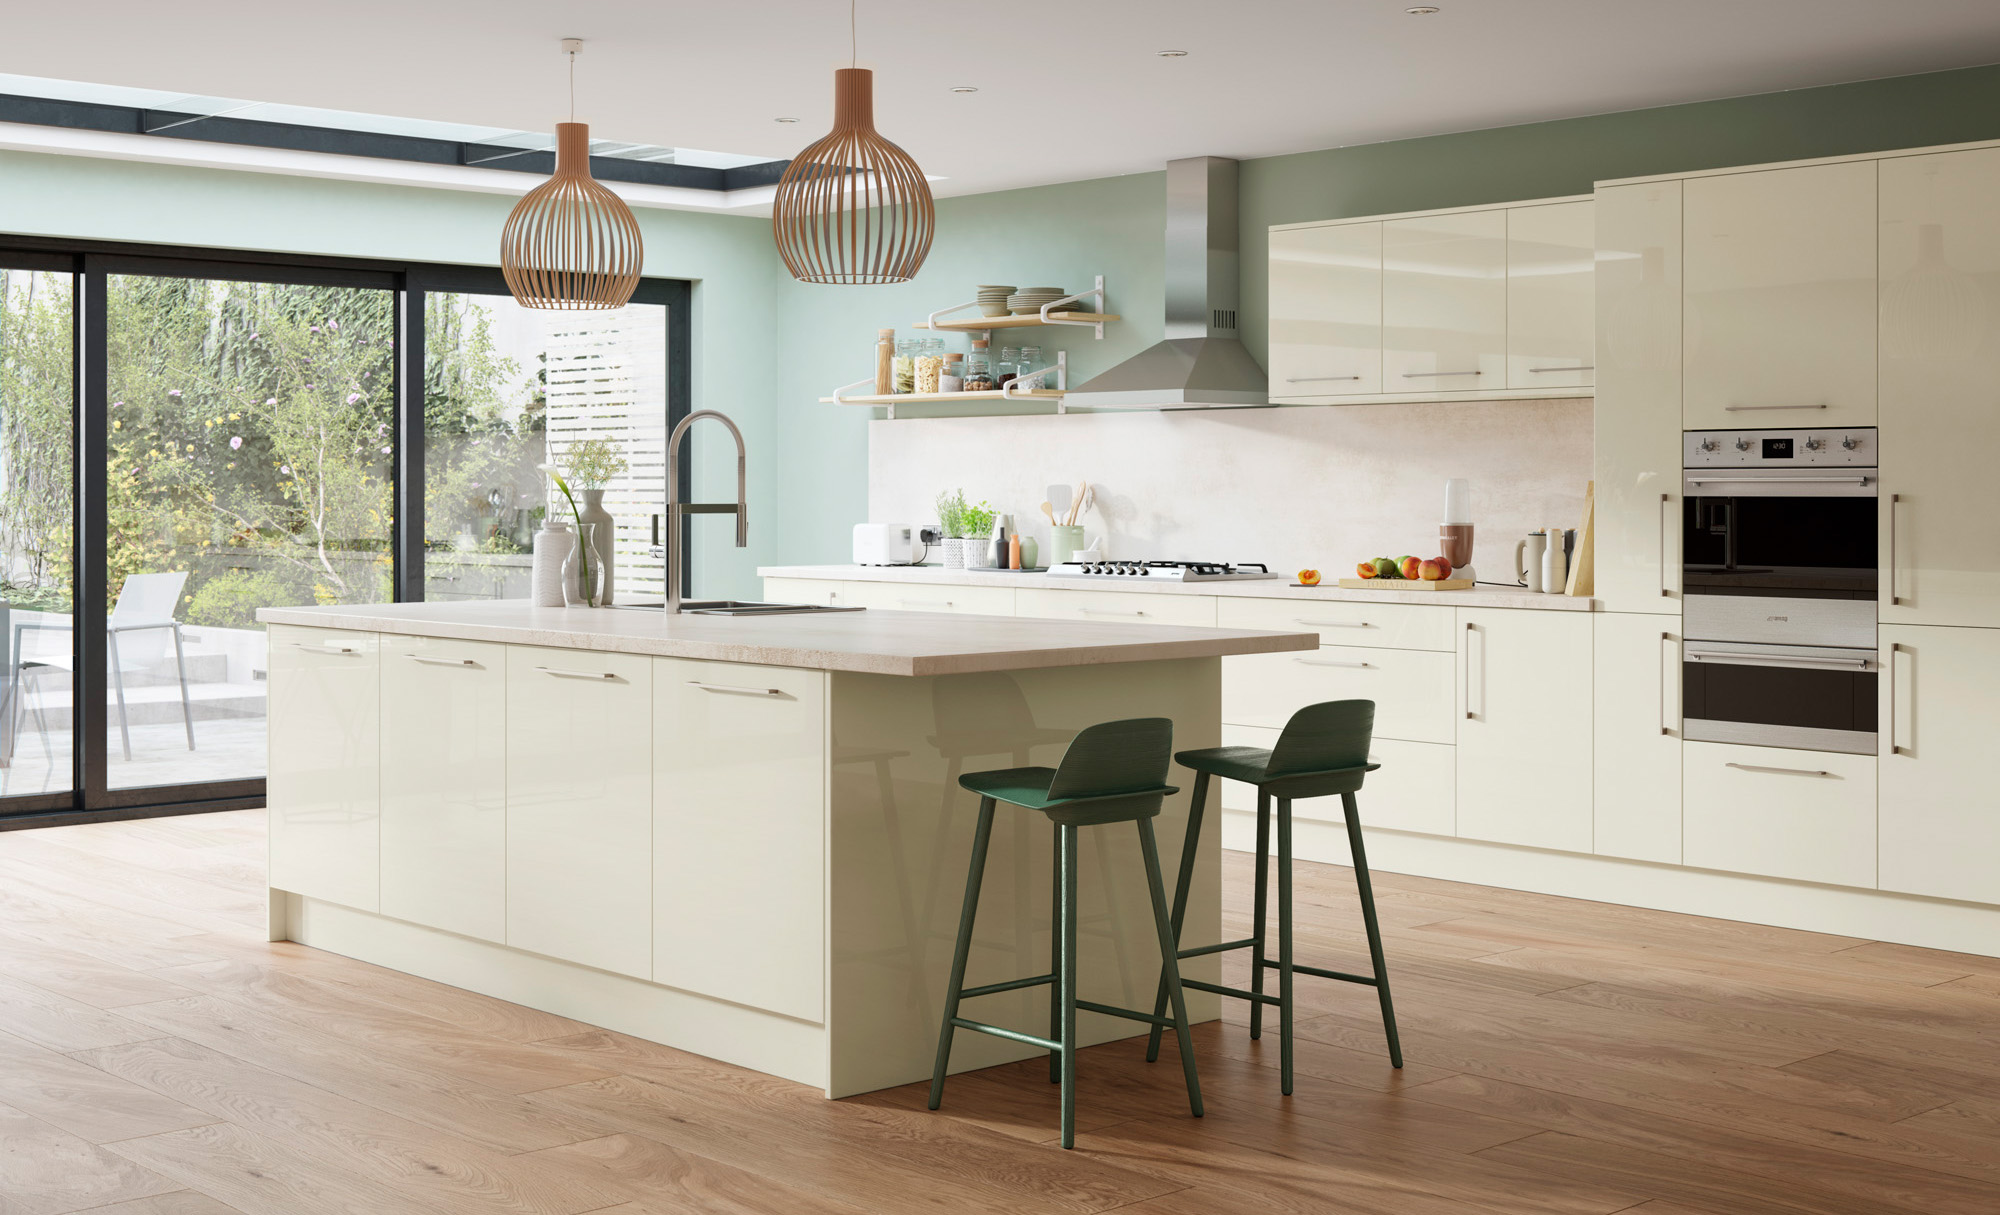 Zola Gloss Kitchen in Porcelain